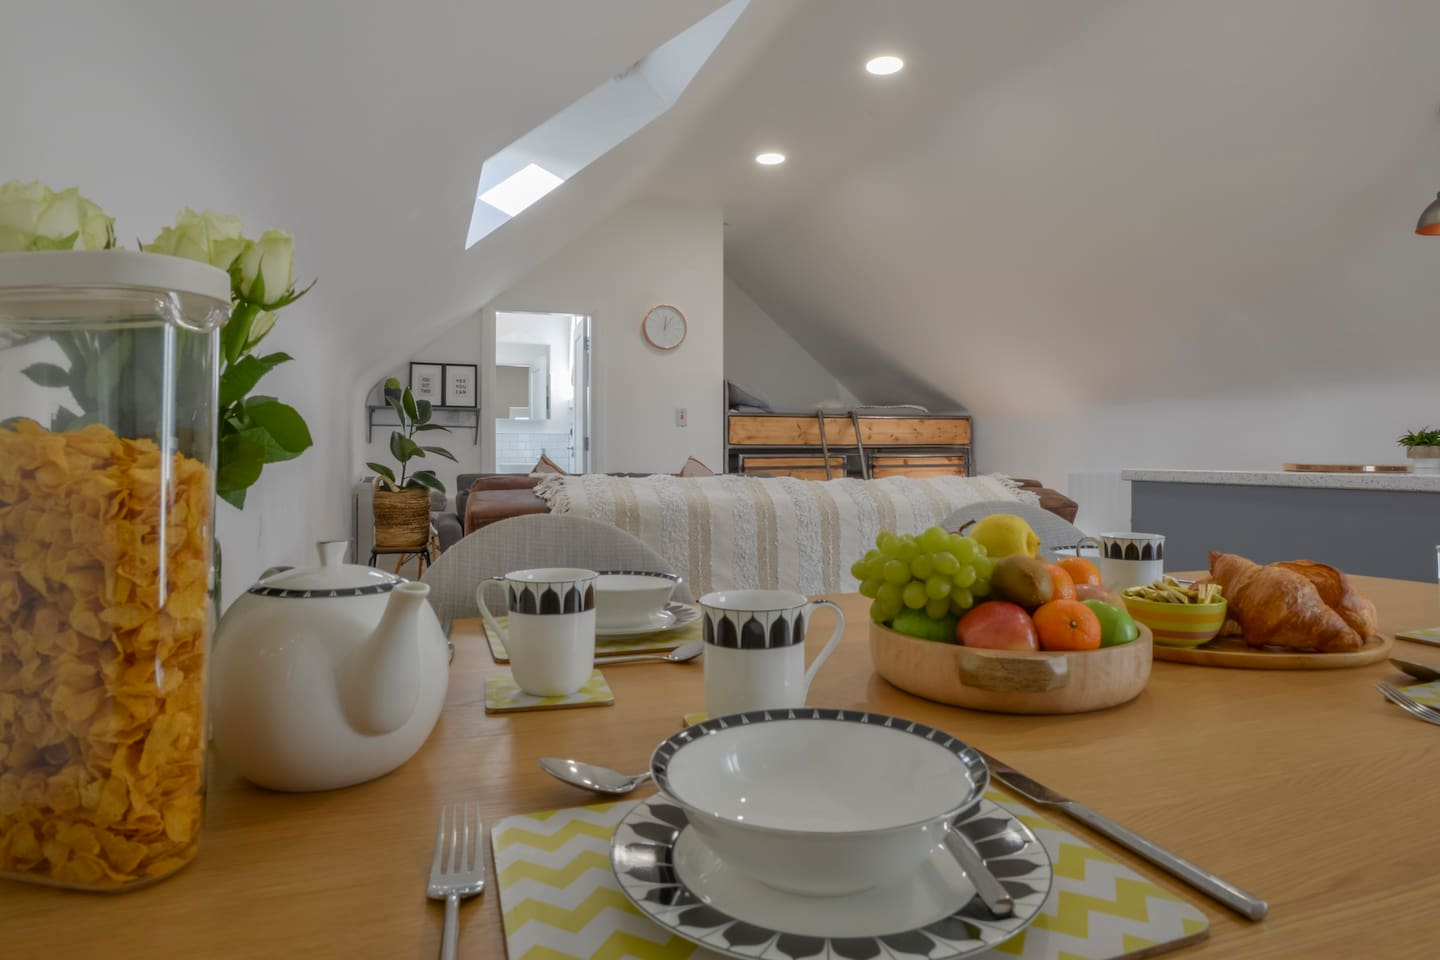 The Loft has full dining facilities which can seat 4 around the table and additional guests on the island